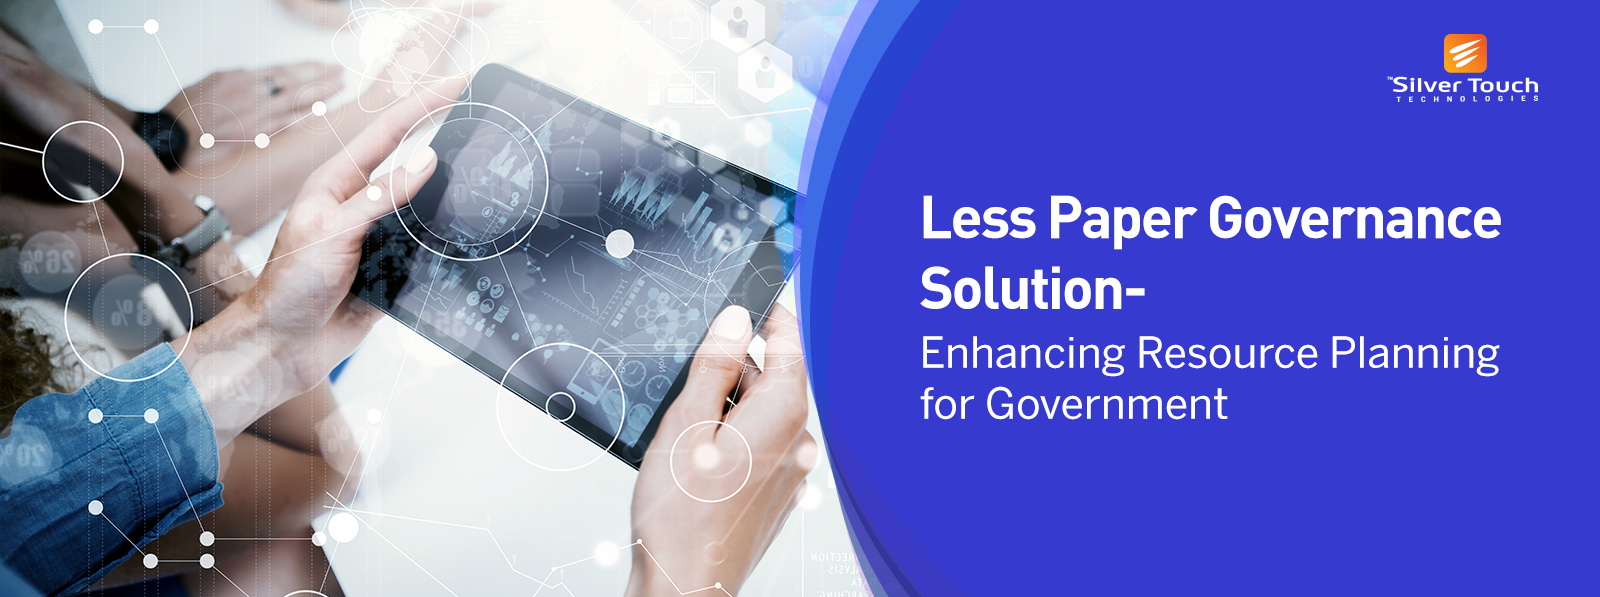 Less Paper Governance Solution